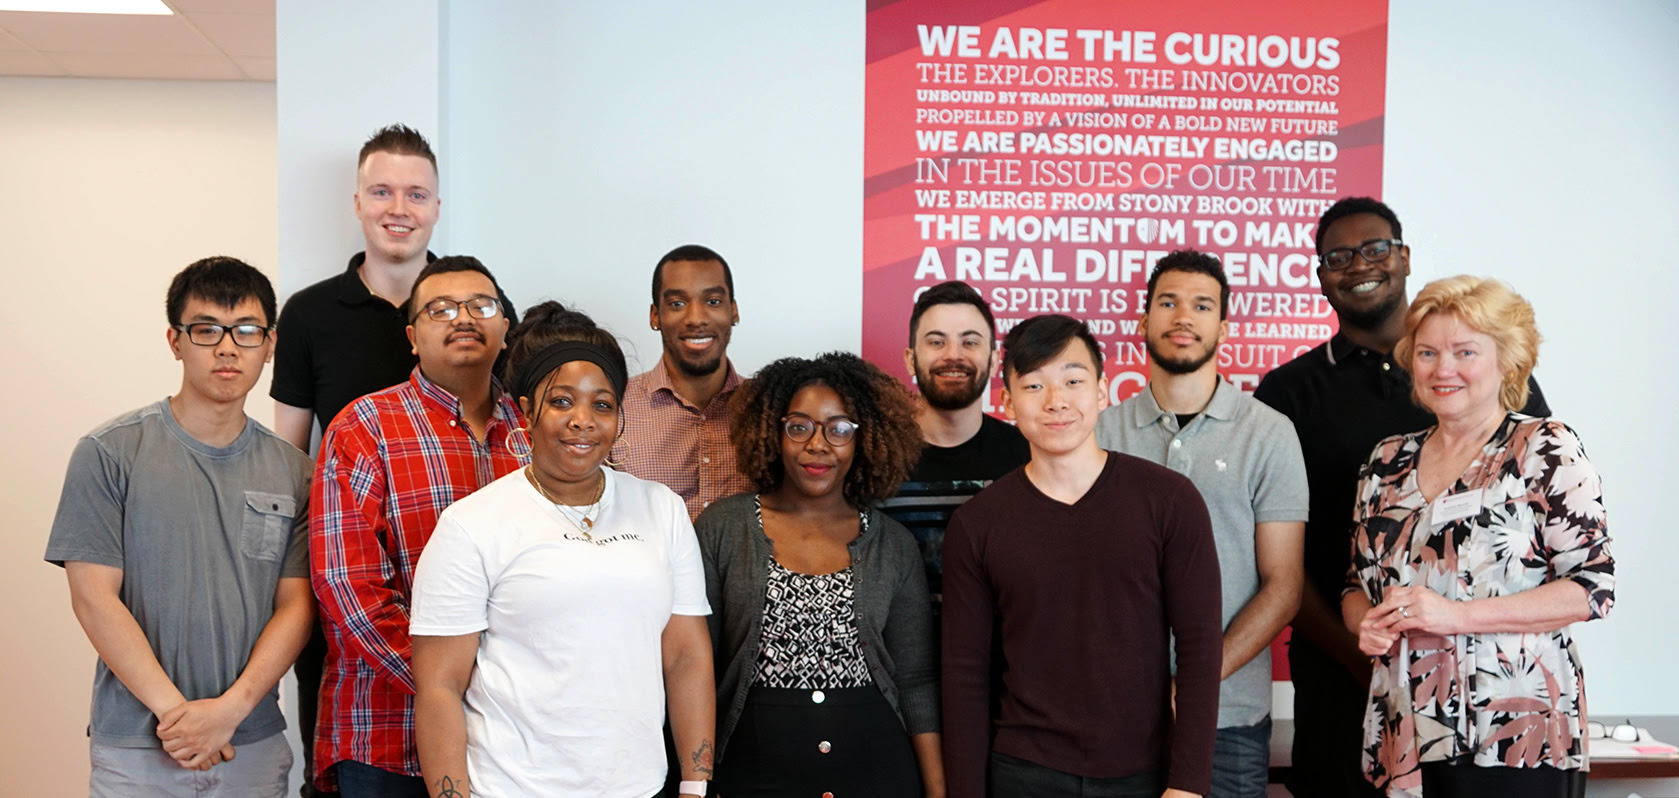 Thirteen students participated in the FSA Summer Internship and worked with a variety of FSA departments. Some of them are (from left to right): Darian Chen, Carson Barnes, Lazaro Rivera, Lasandra Mitchell, Torrin Faison, T'Kheya Yisrael, Eddie Gallagher, William Zhu, Claudio Concepcion, Marquis Sampson and Pat Murray